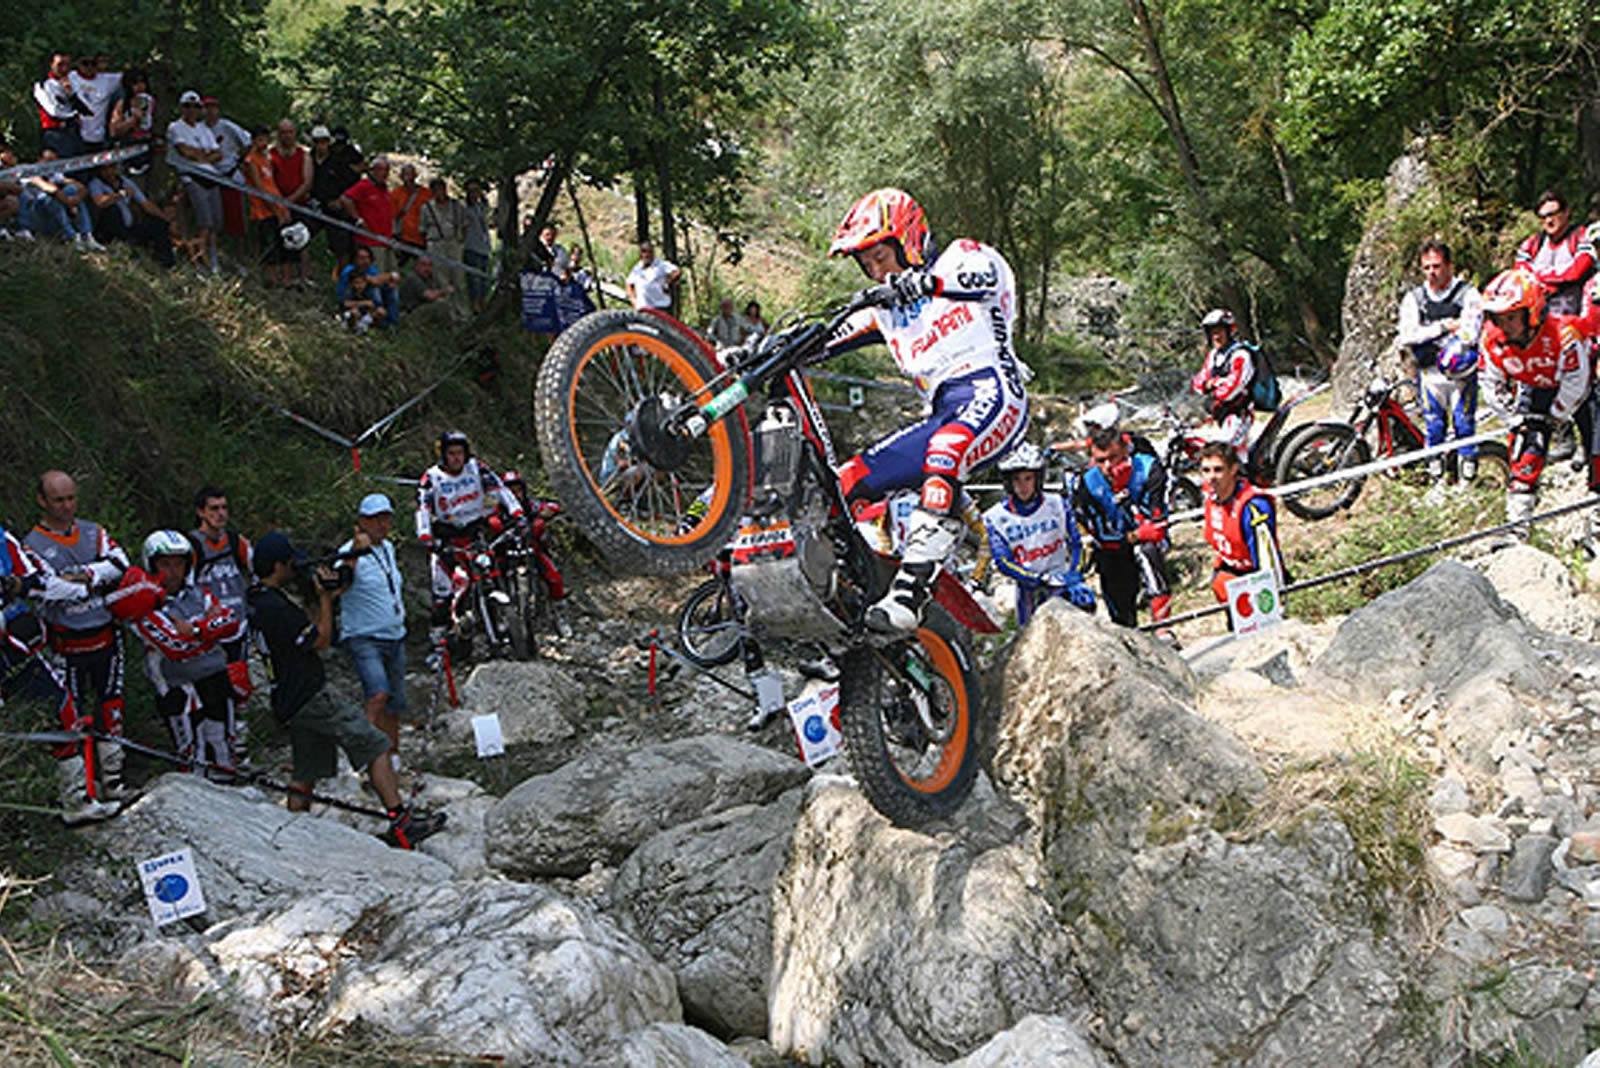 motorcycle trial world championship